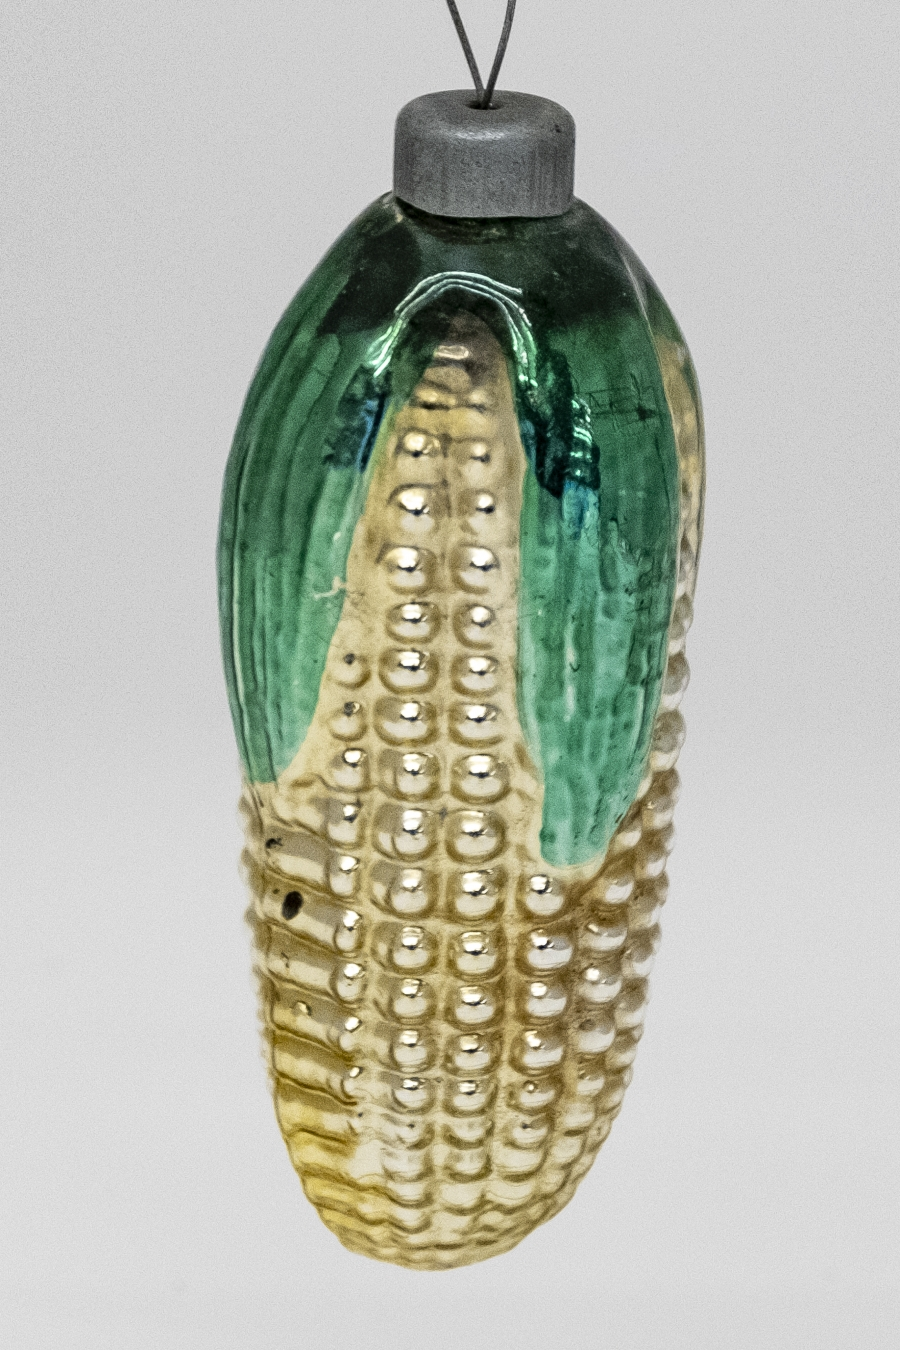 A golden tin corn-shaped ornament with green-painted leaves.